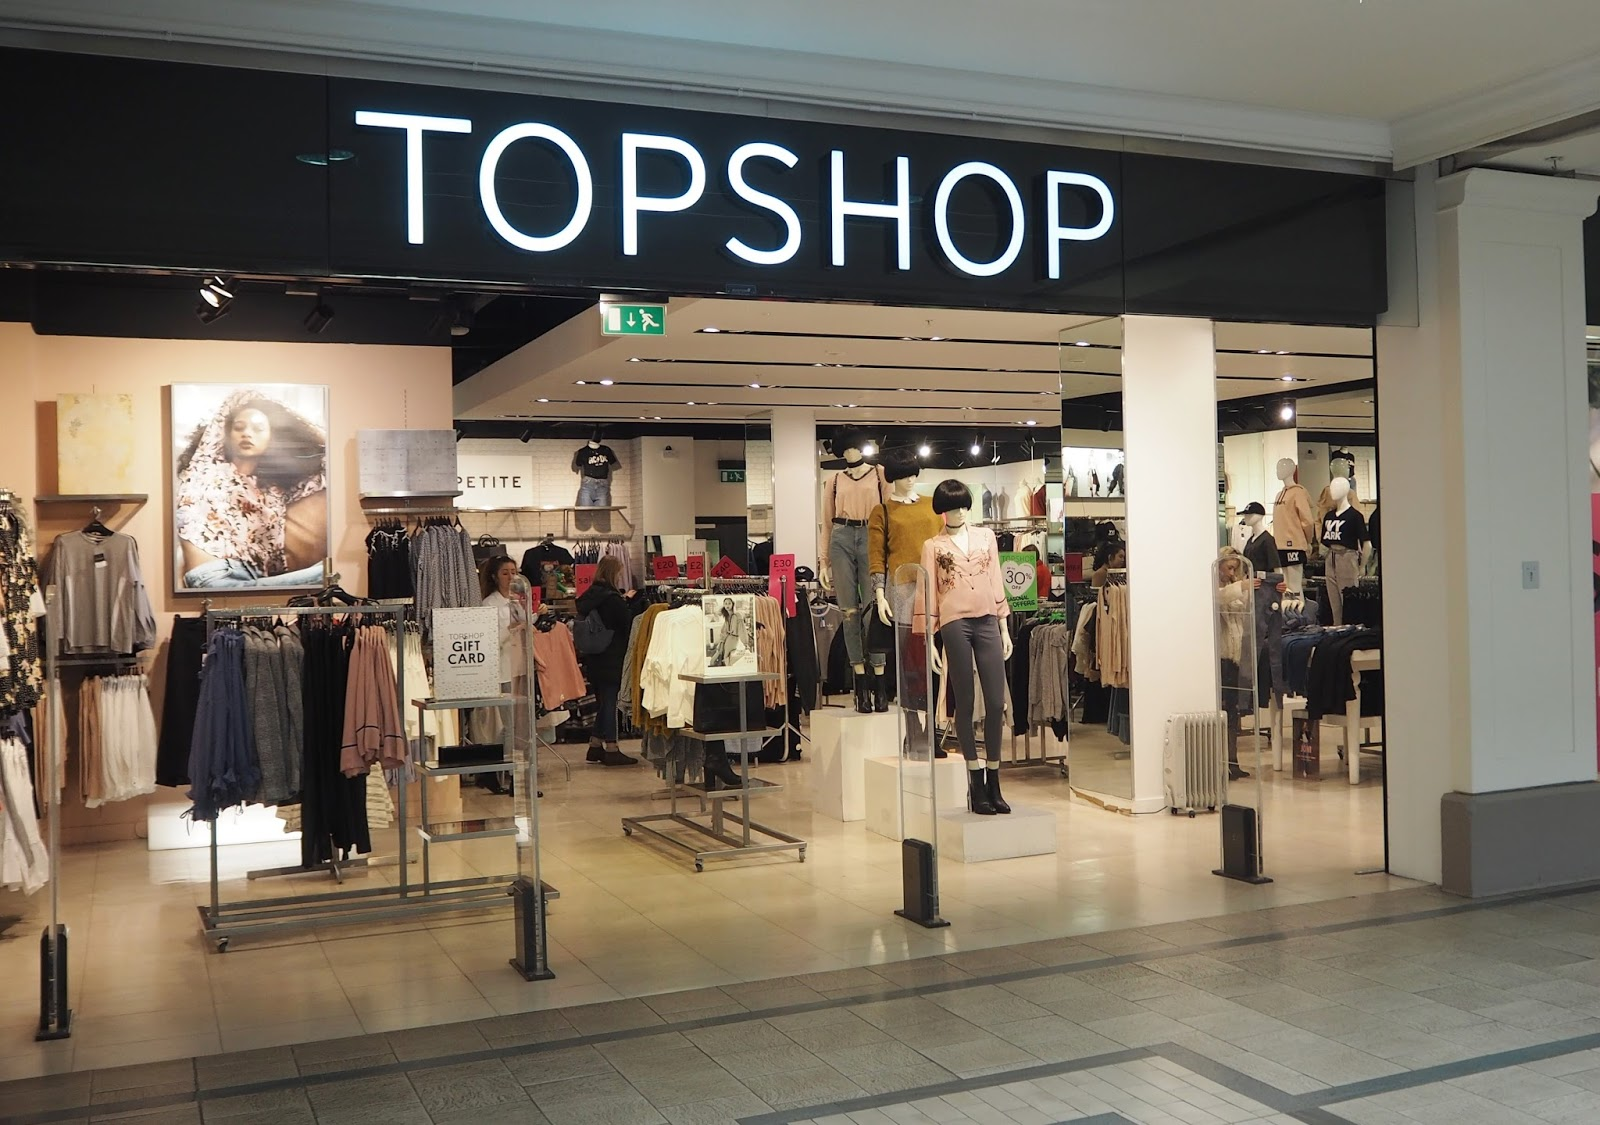 Topshop, Westmorland shopping centre, Kendal